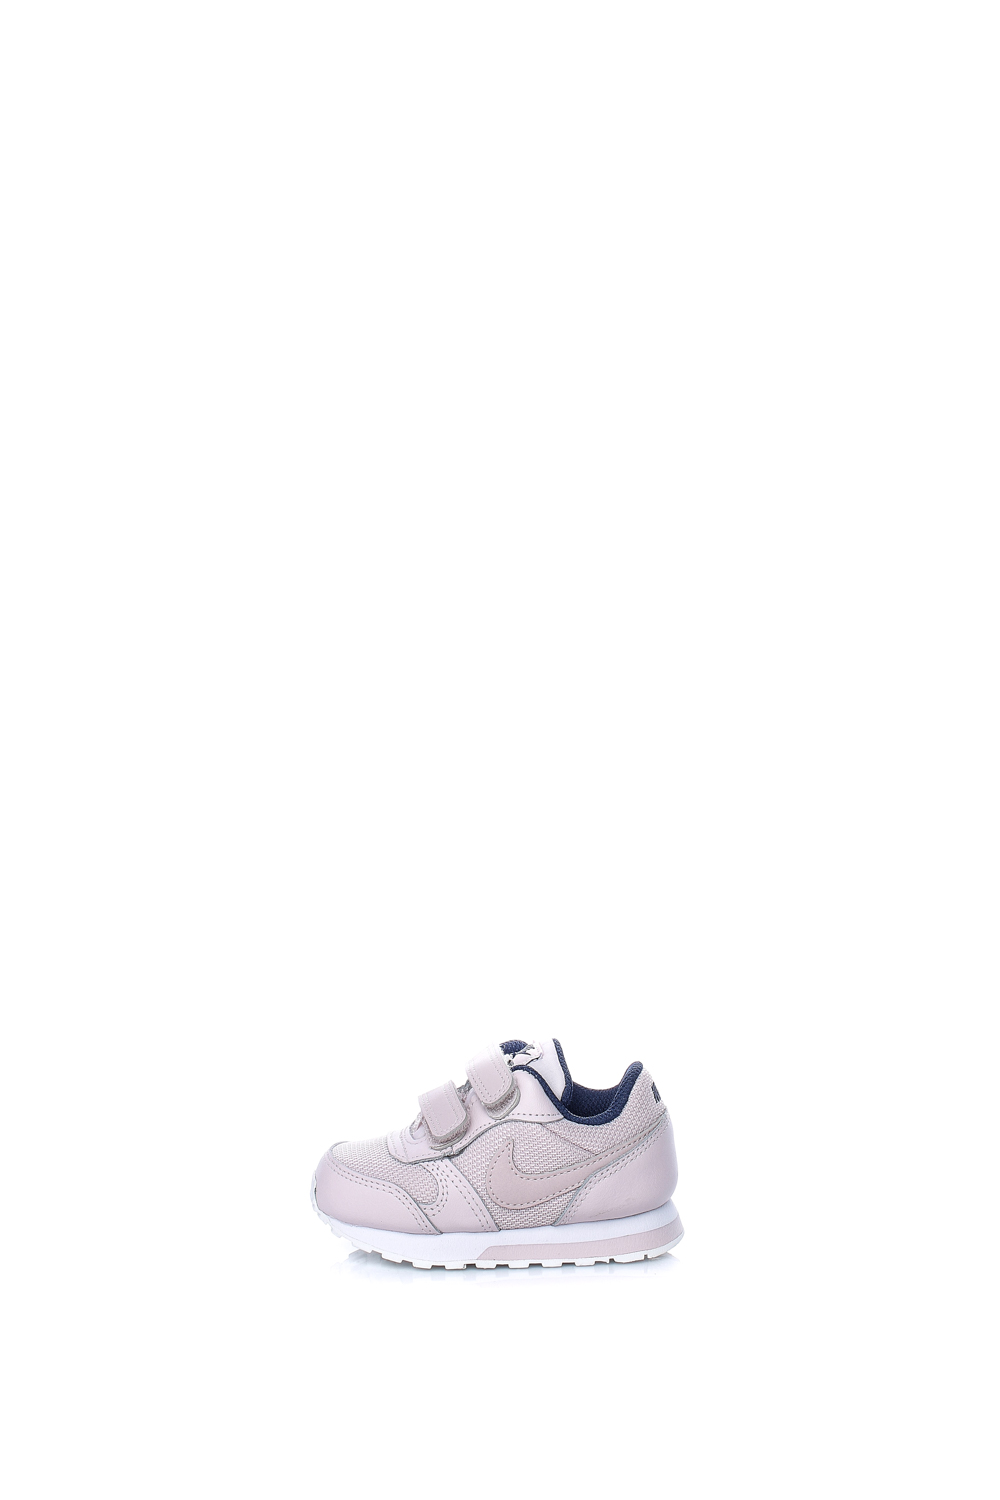 -30% Collective Online NIKE – Βρεφικά παπούτσια NIKE MD RUNNER 2 (TDV) ροζ 2f7dcc90434